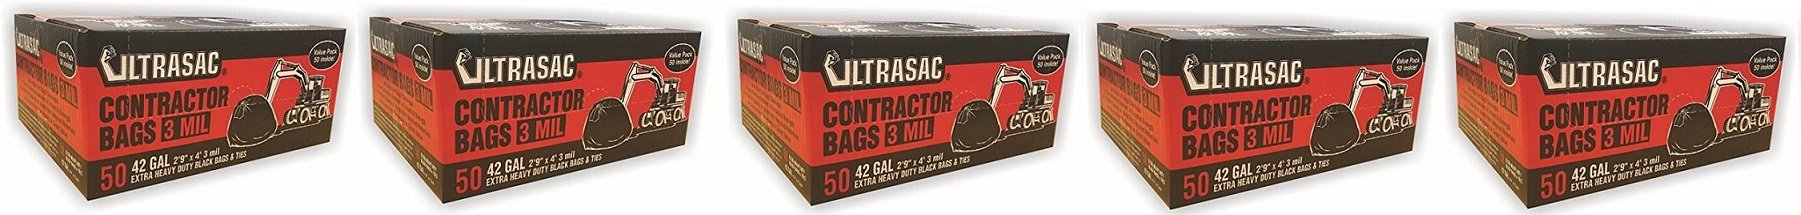 UltraSac Contractor Bags Value 50 Pack, 42 Gallon, 2'9'' X 4' 3 mil (5-50 Pack)